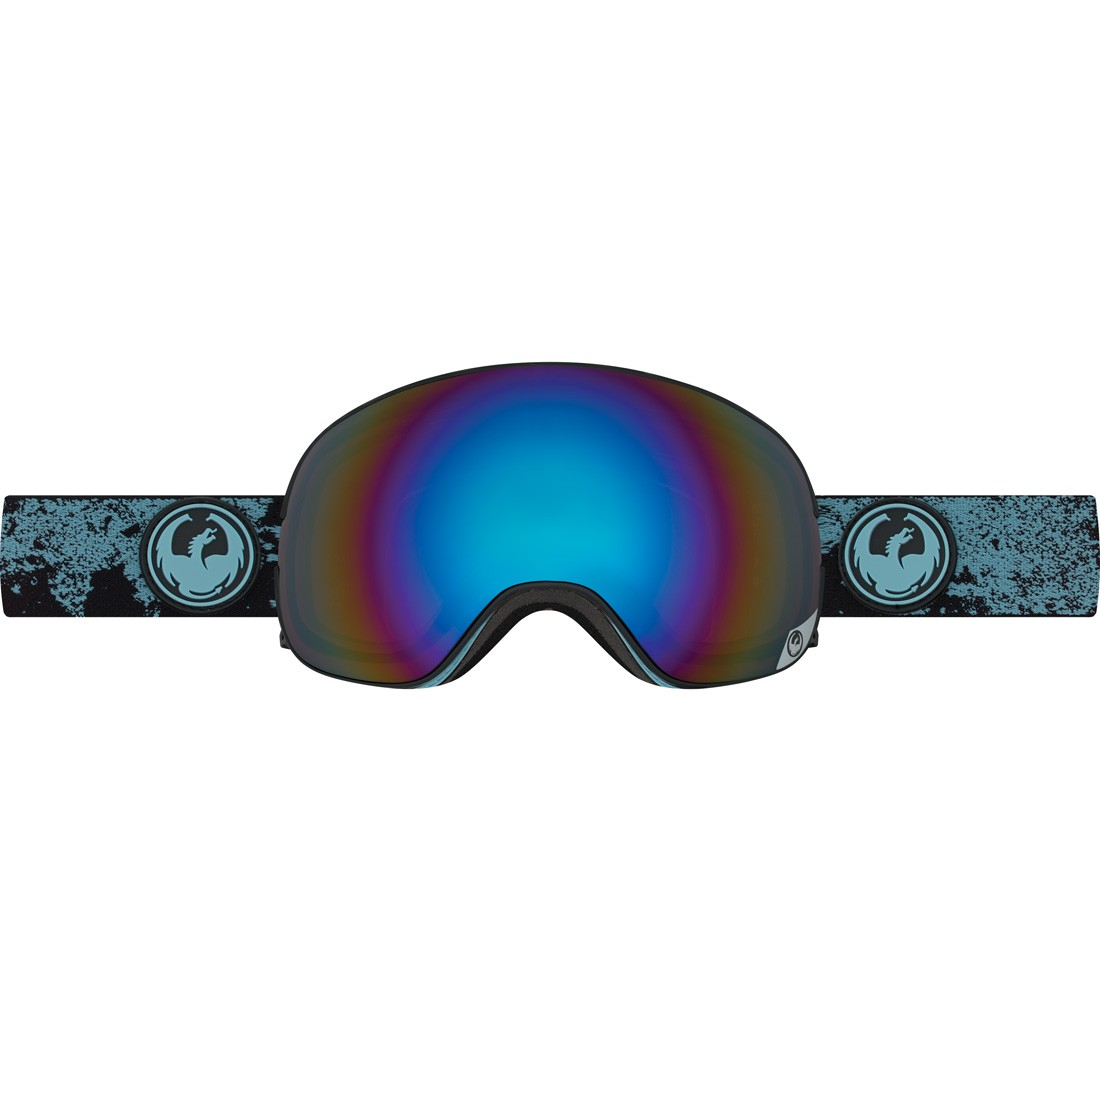 Dragon Alliance X2 Snow Goggle by Dragon Alliance